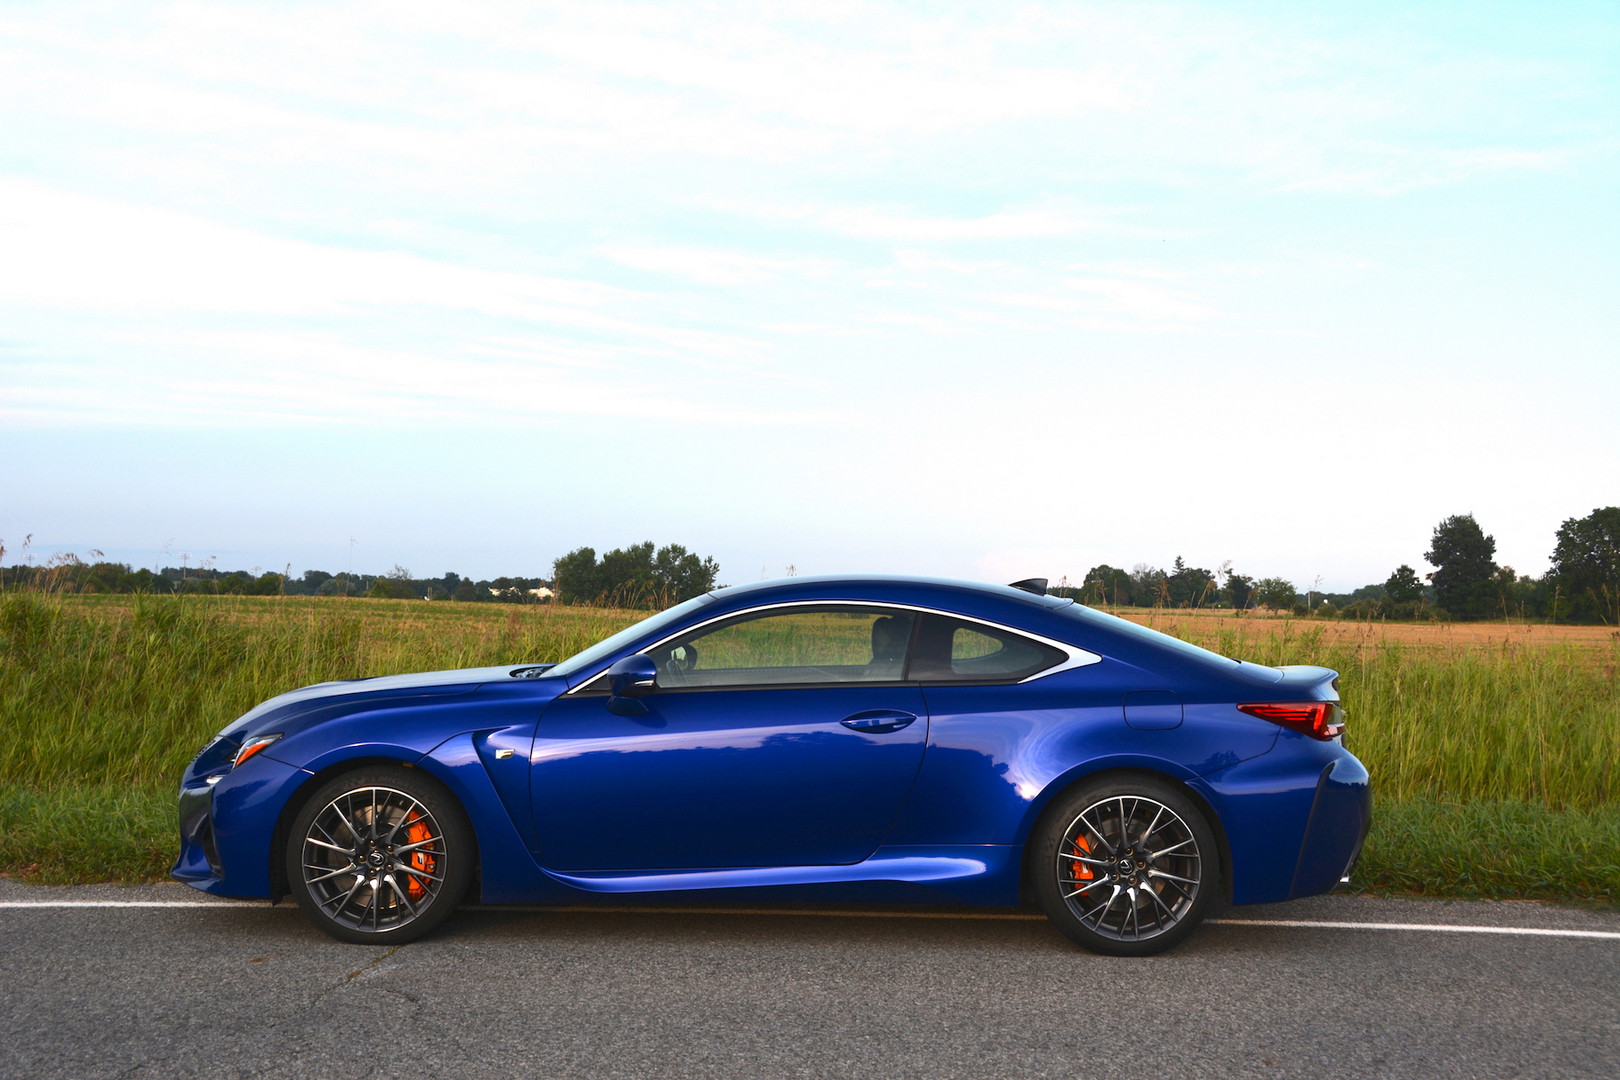 2019 Lexus RC F Side View